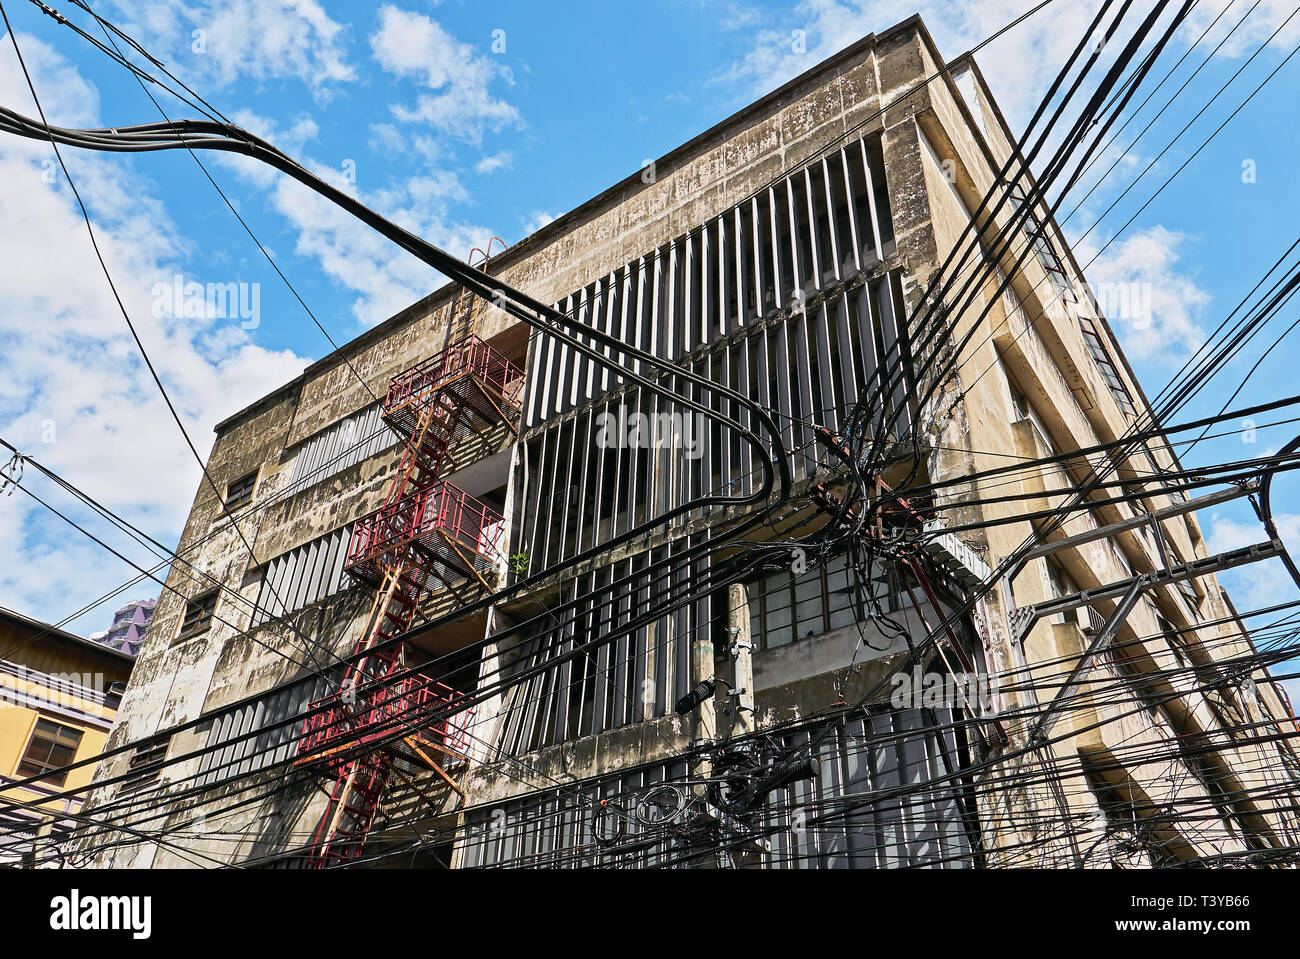 Low-angle view of an old high-rise business building and a mess of cables and power lines in mainly chinese Binondo district, Manila, Philippines - Stock Image